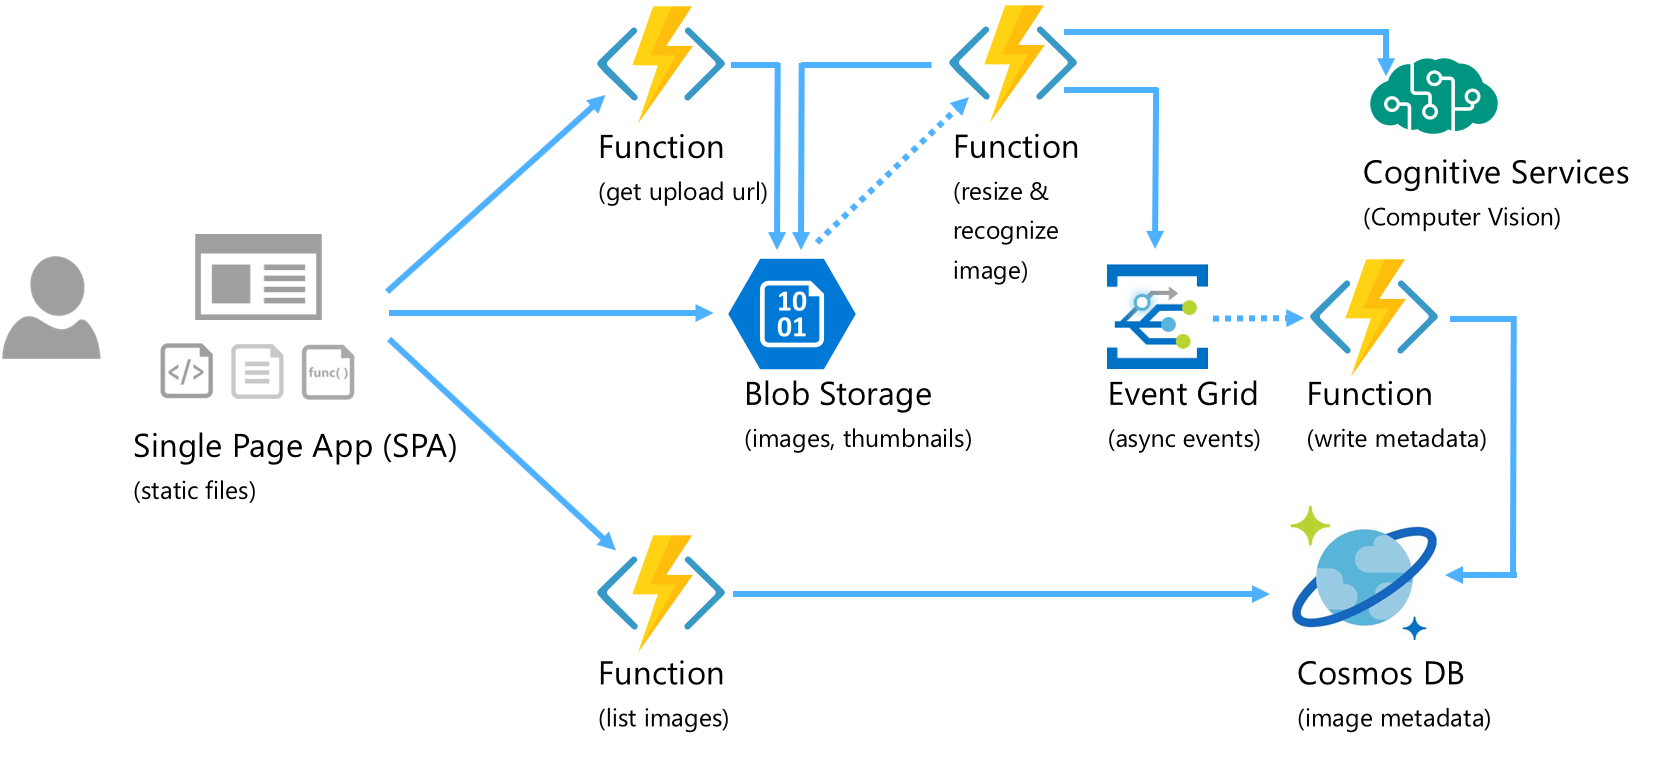 event-driven serverless architecture